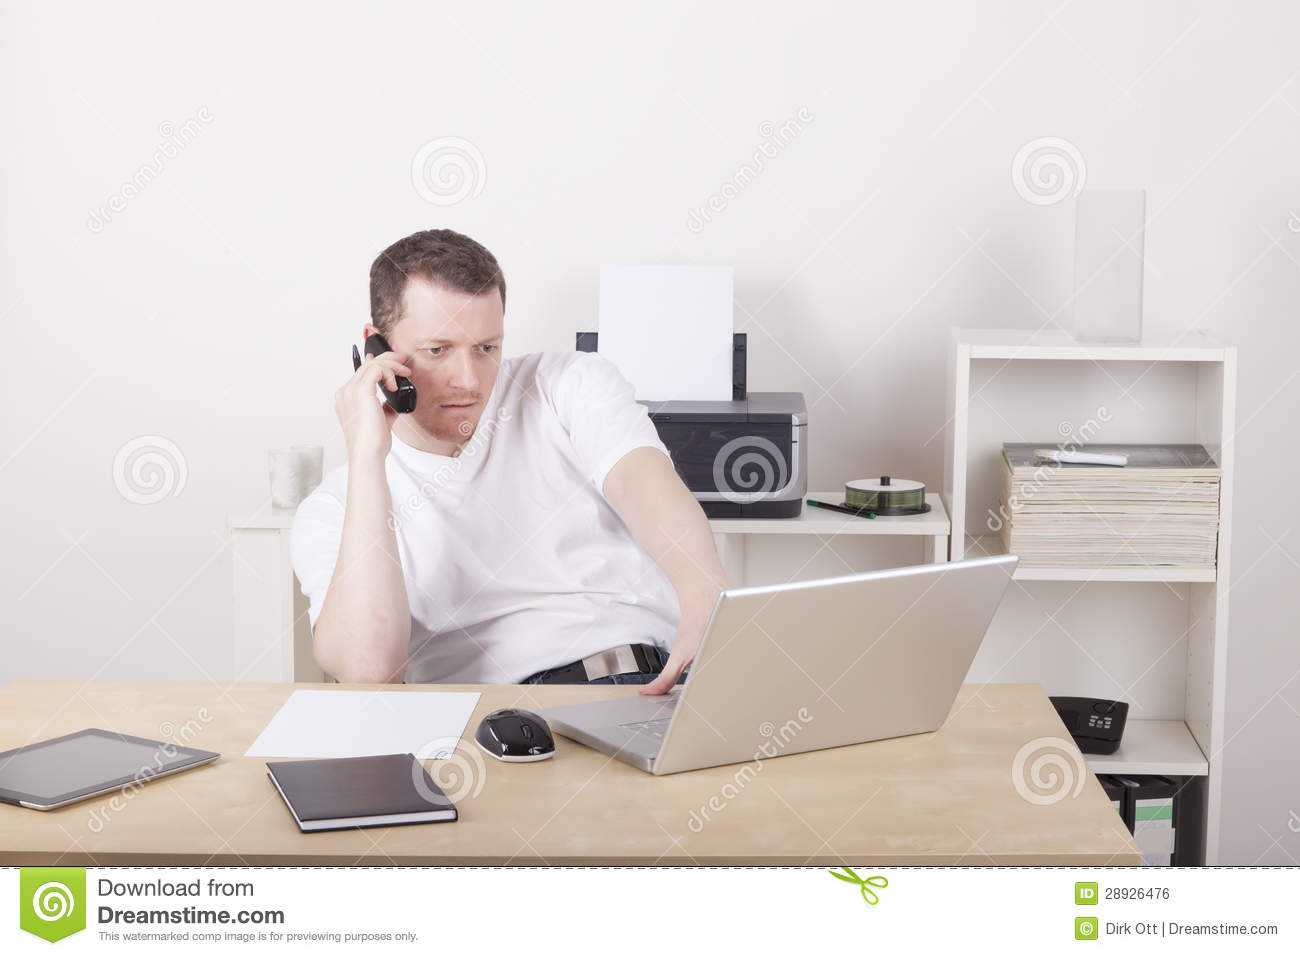 royalty free stock photo download man working in home office - Working In Home Office